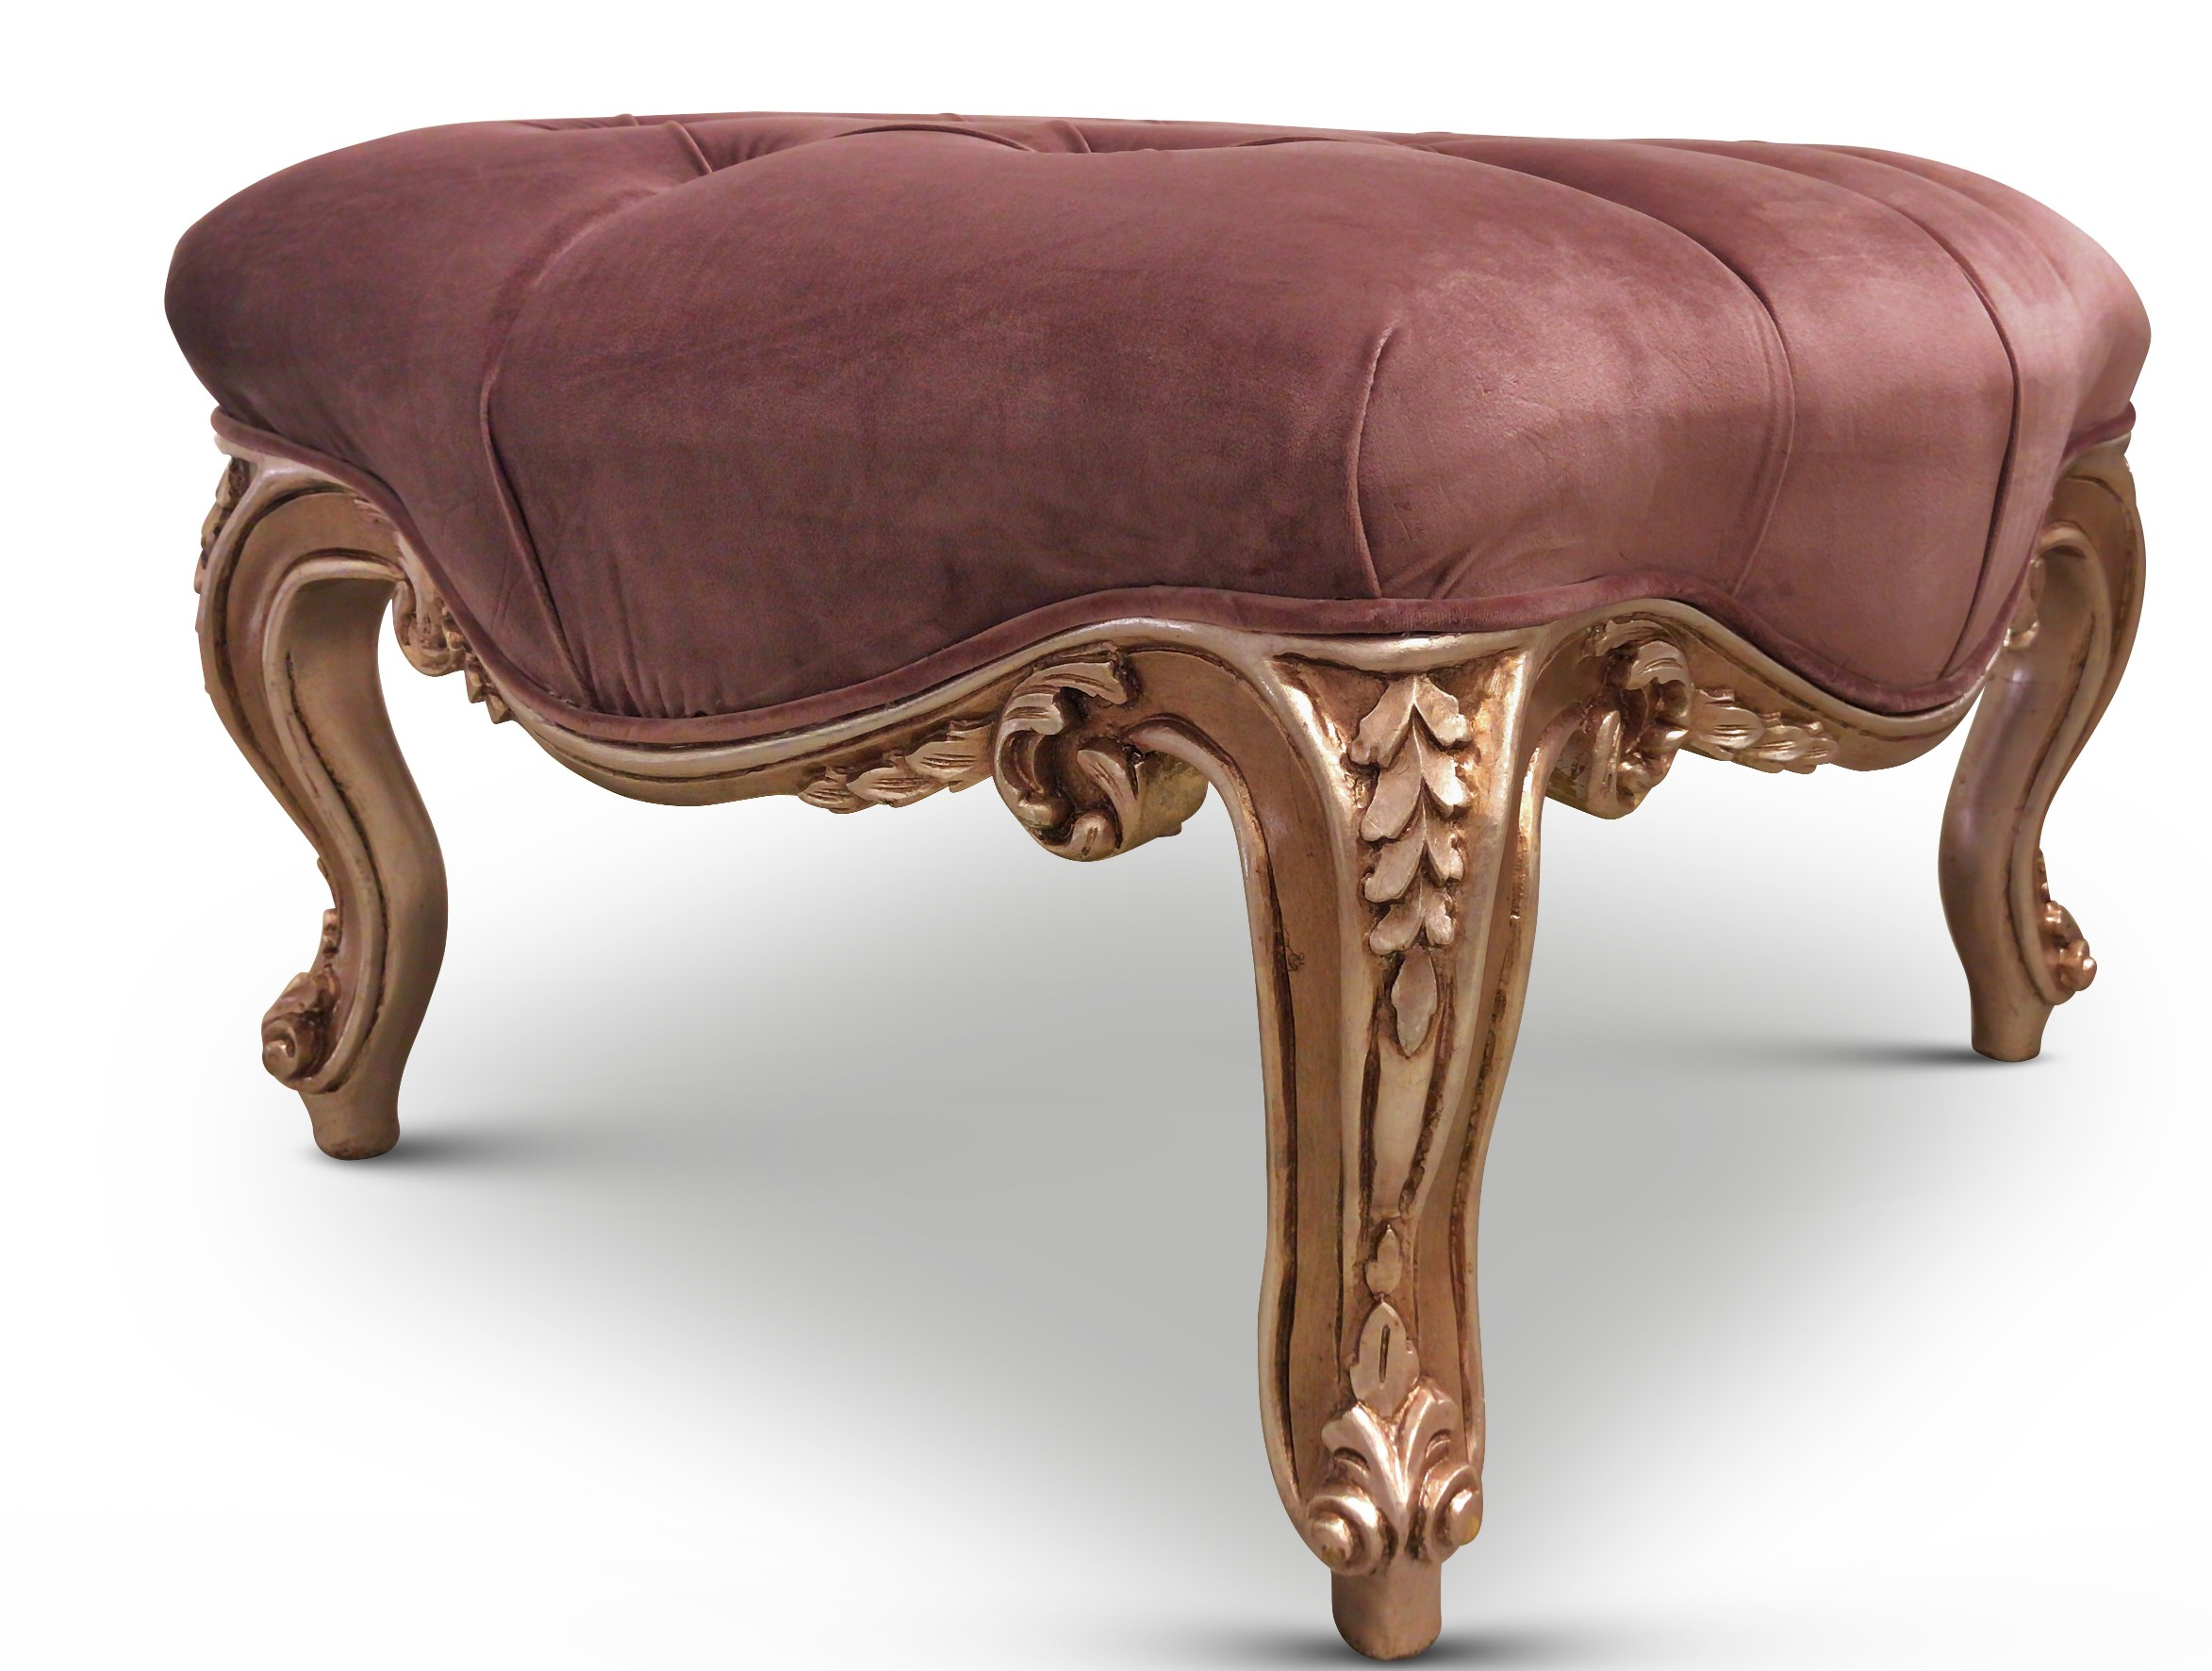 Rose cent-feuille, French Style, Rose Gold Leaf, Tufted Mauve Taupe Velvet, Ottoman